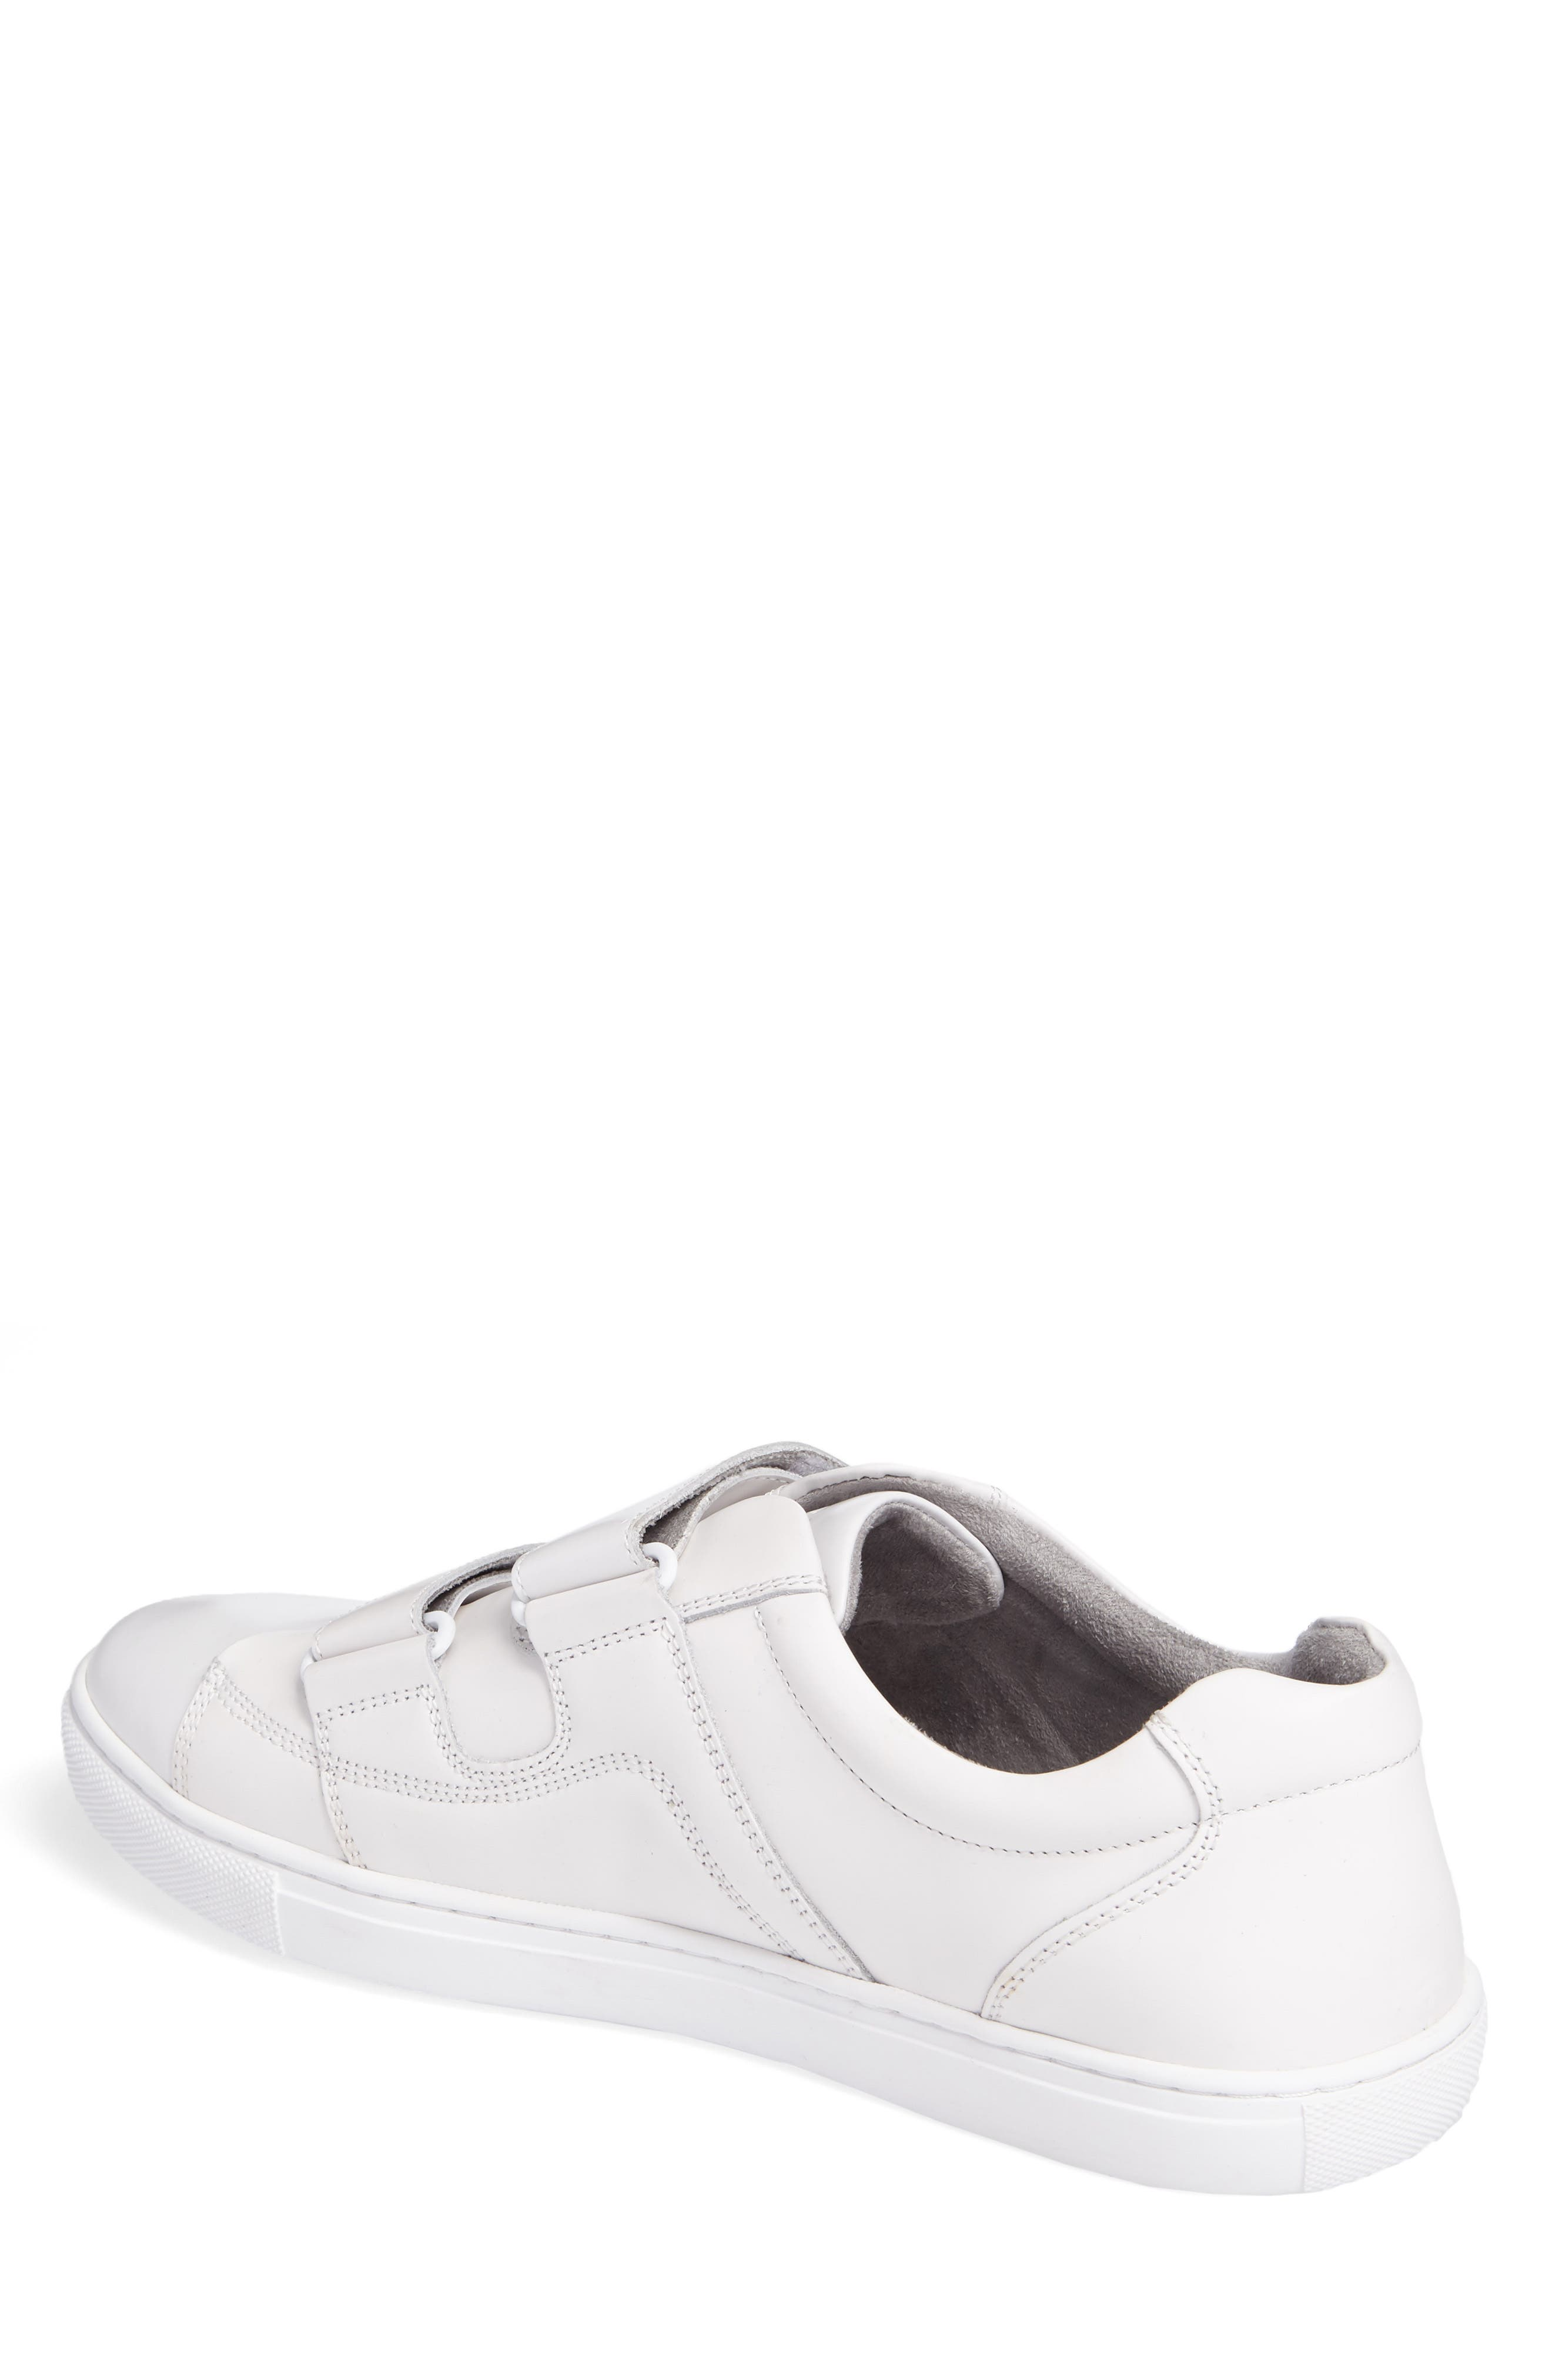 Alternate Image 2  - Kenneth Cole New York Low Top Sneaker (Men)